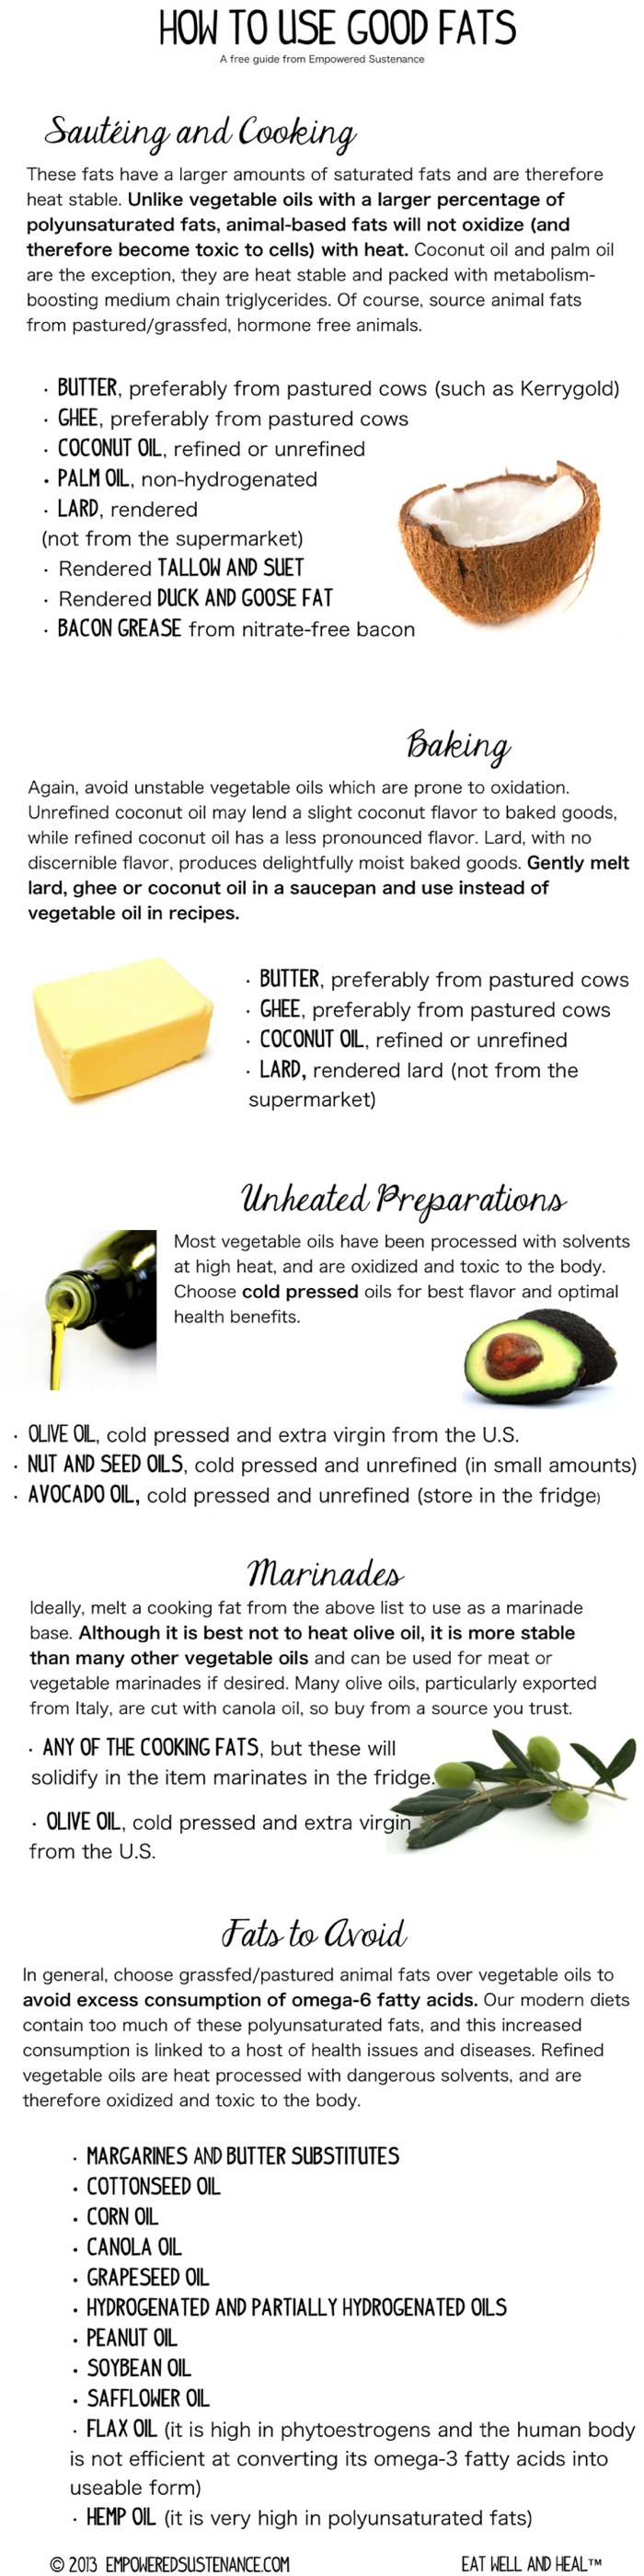 how to use good fats chart